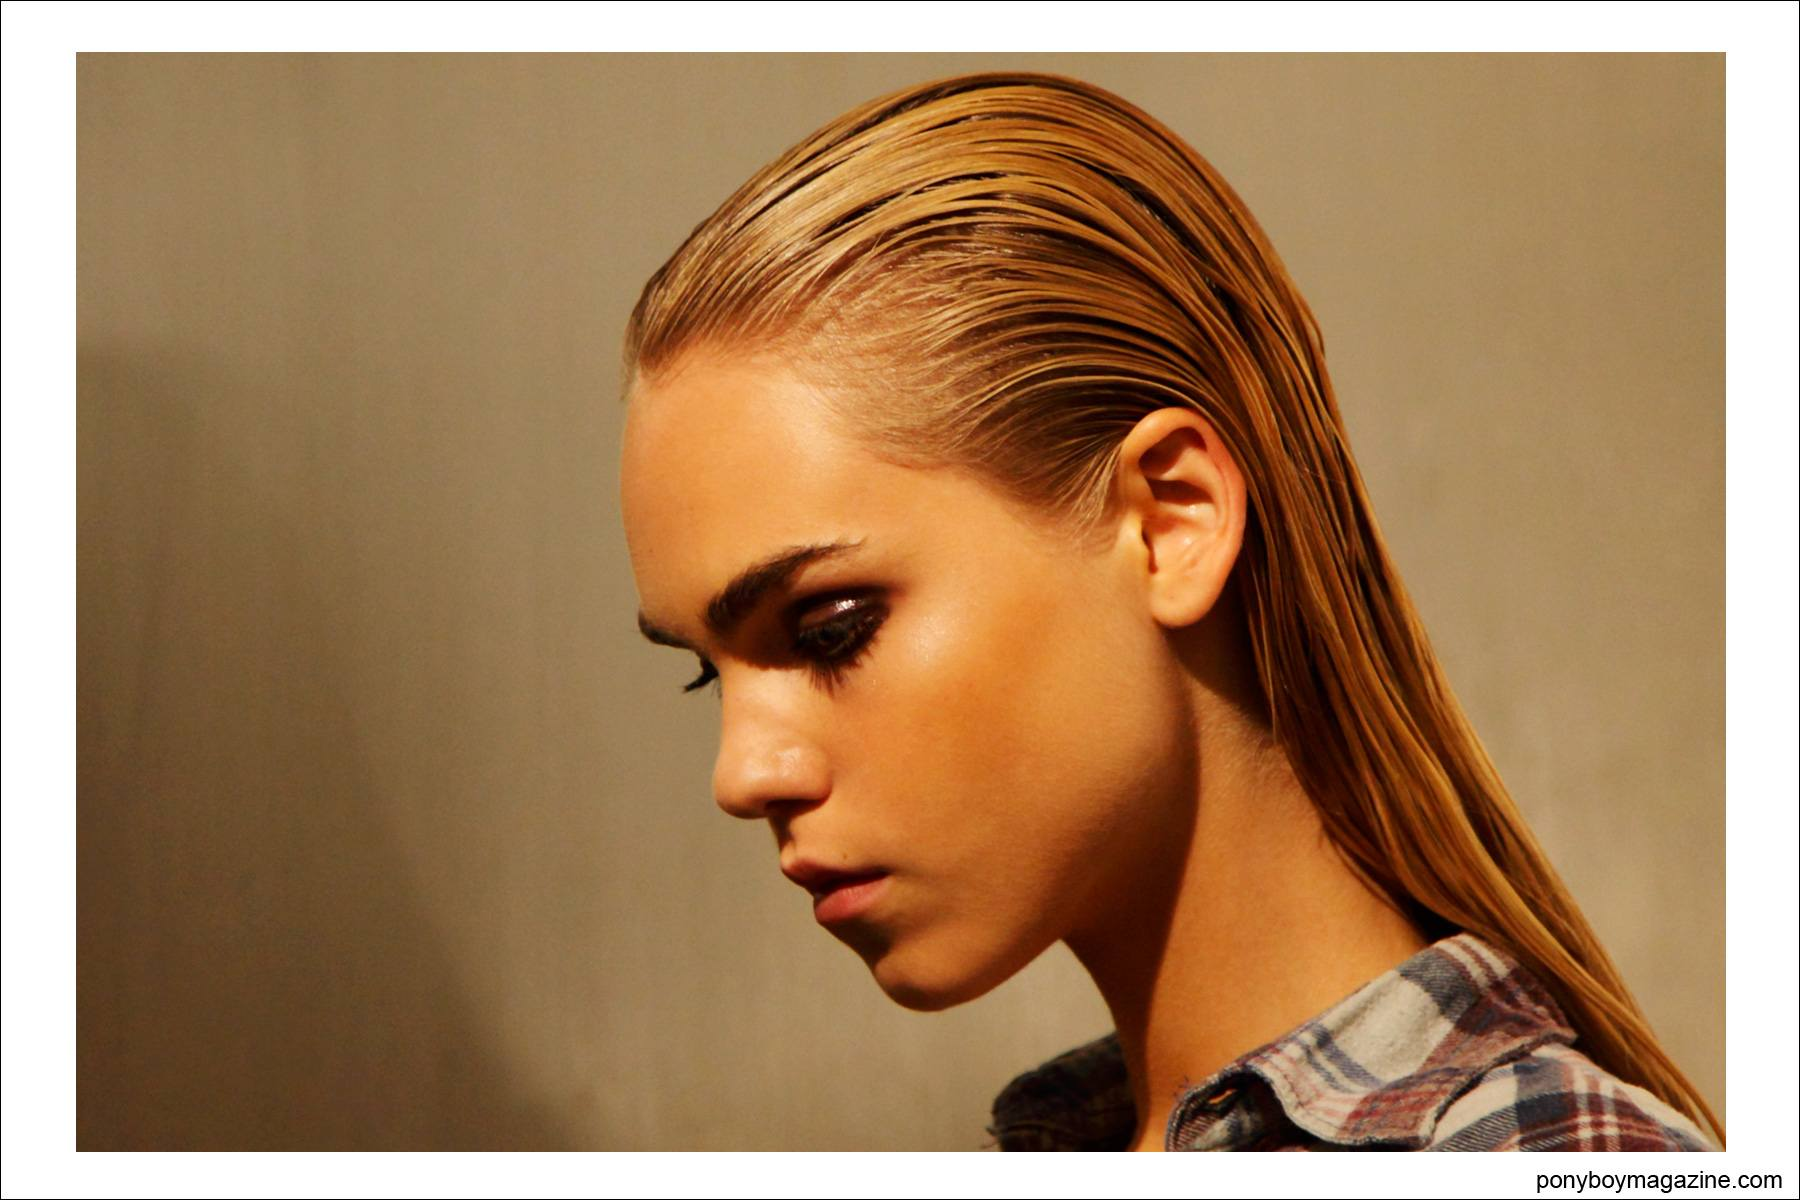 Slicked back wet looking hair backstage at Sophie Theallet S/S15 at Milk Studios NY. Photo by Alexander Thompson for Ponyboy Magazine.